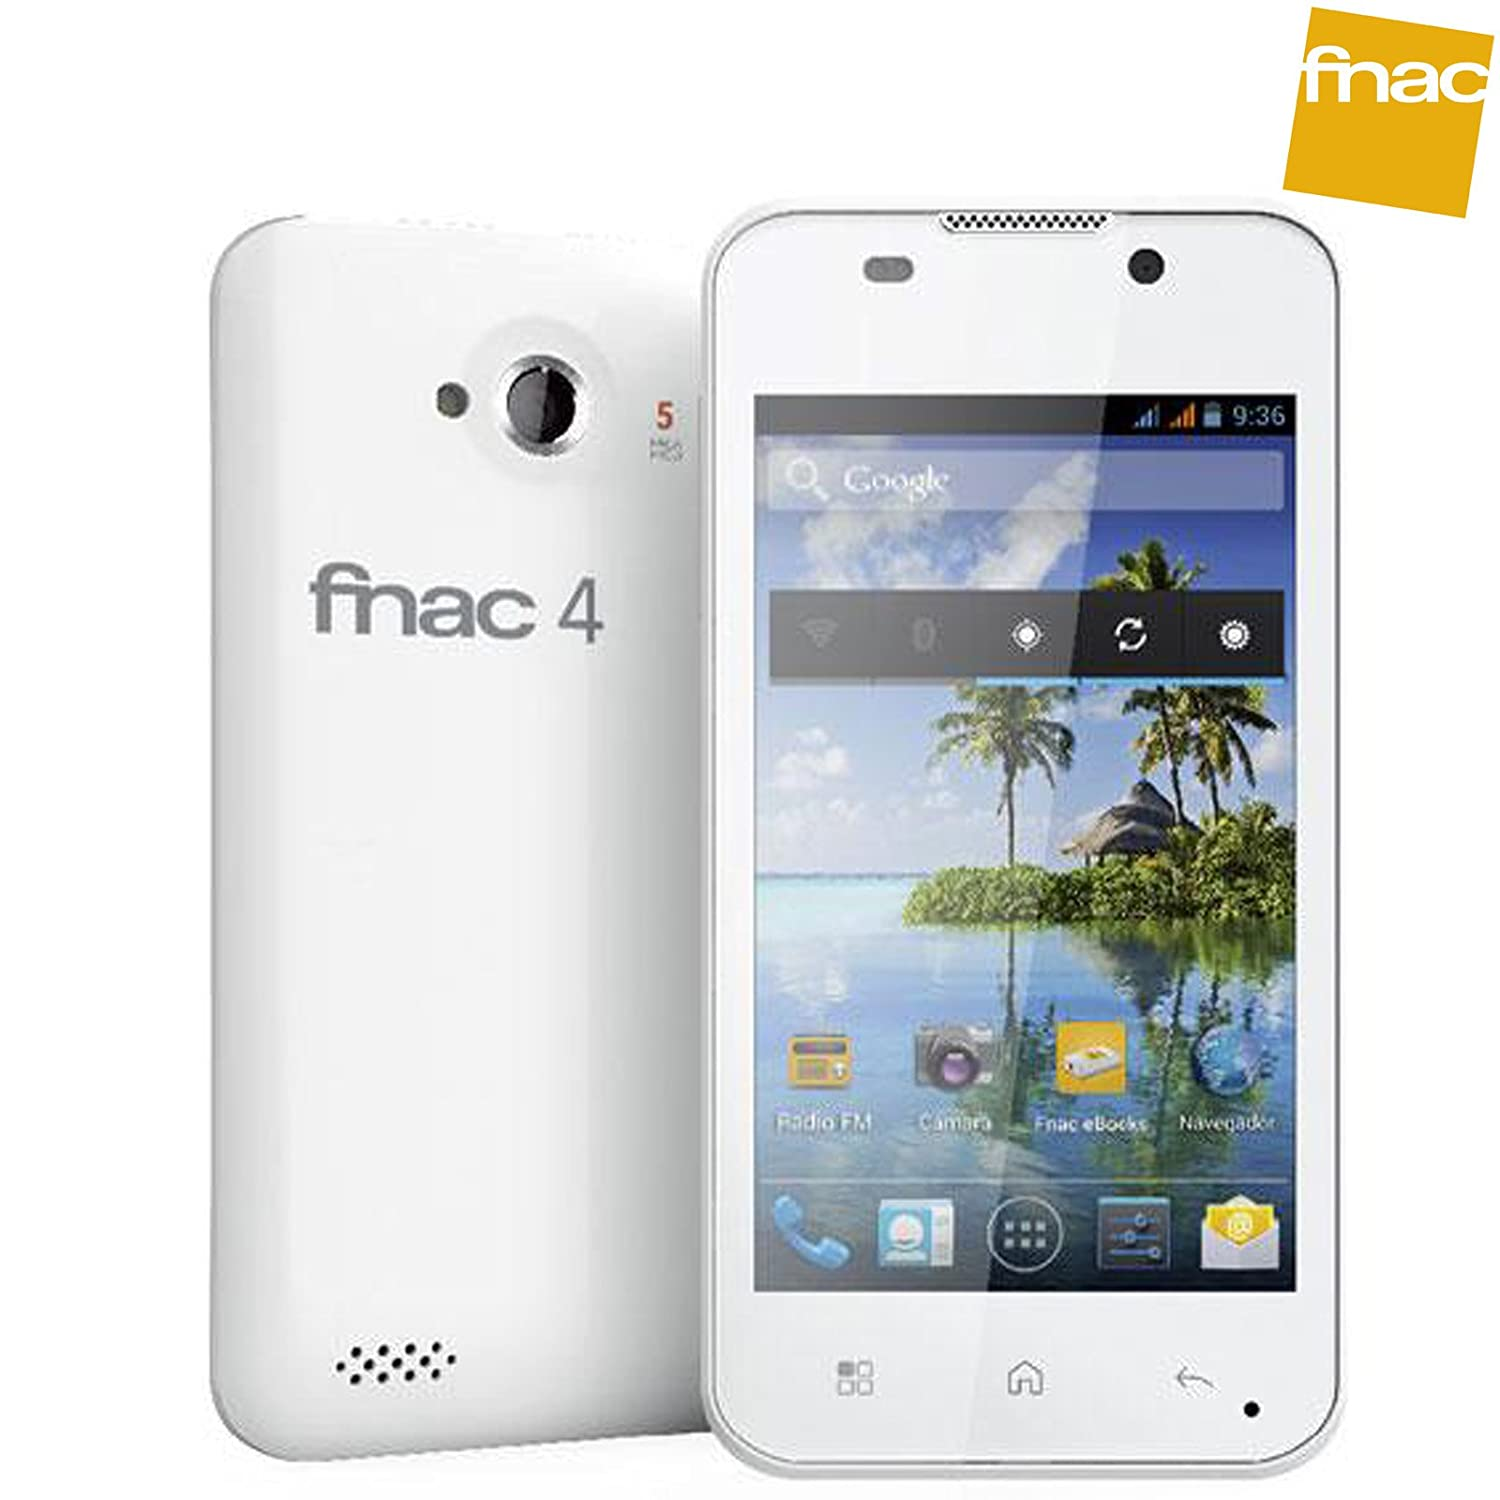 Movil BQ Aquaris 4 Fnac 4 4 GB Dual SIM Blanco Usado | B: Amazon ...